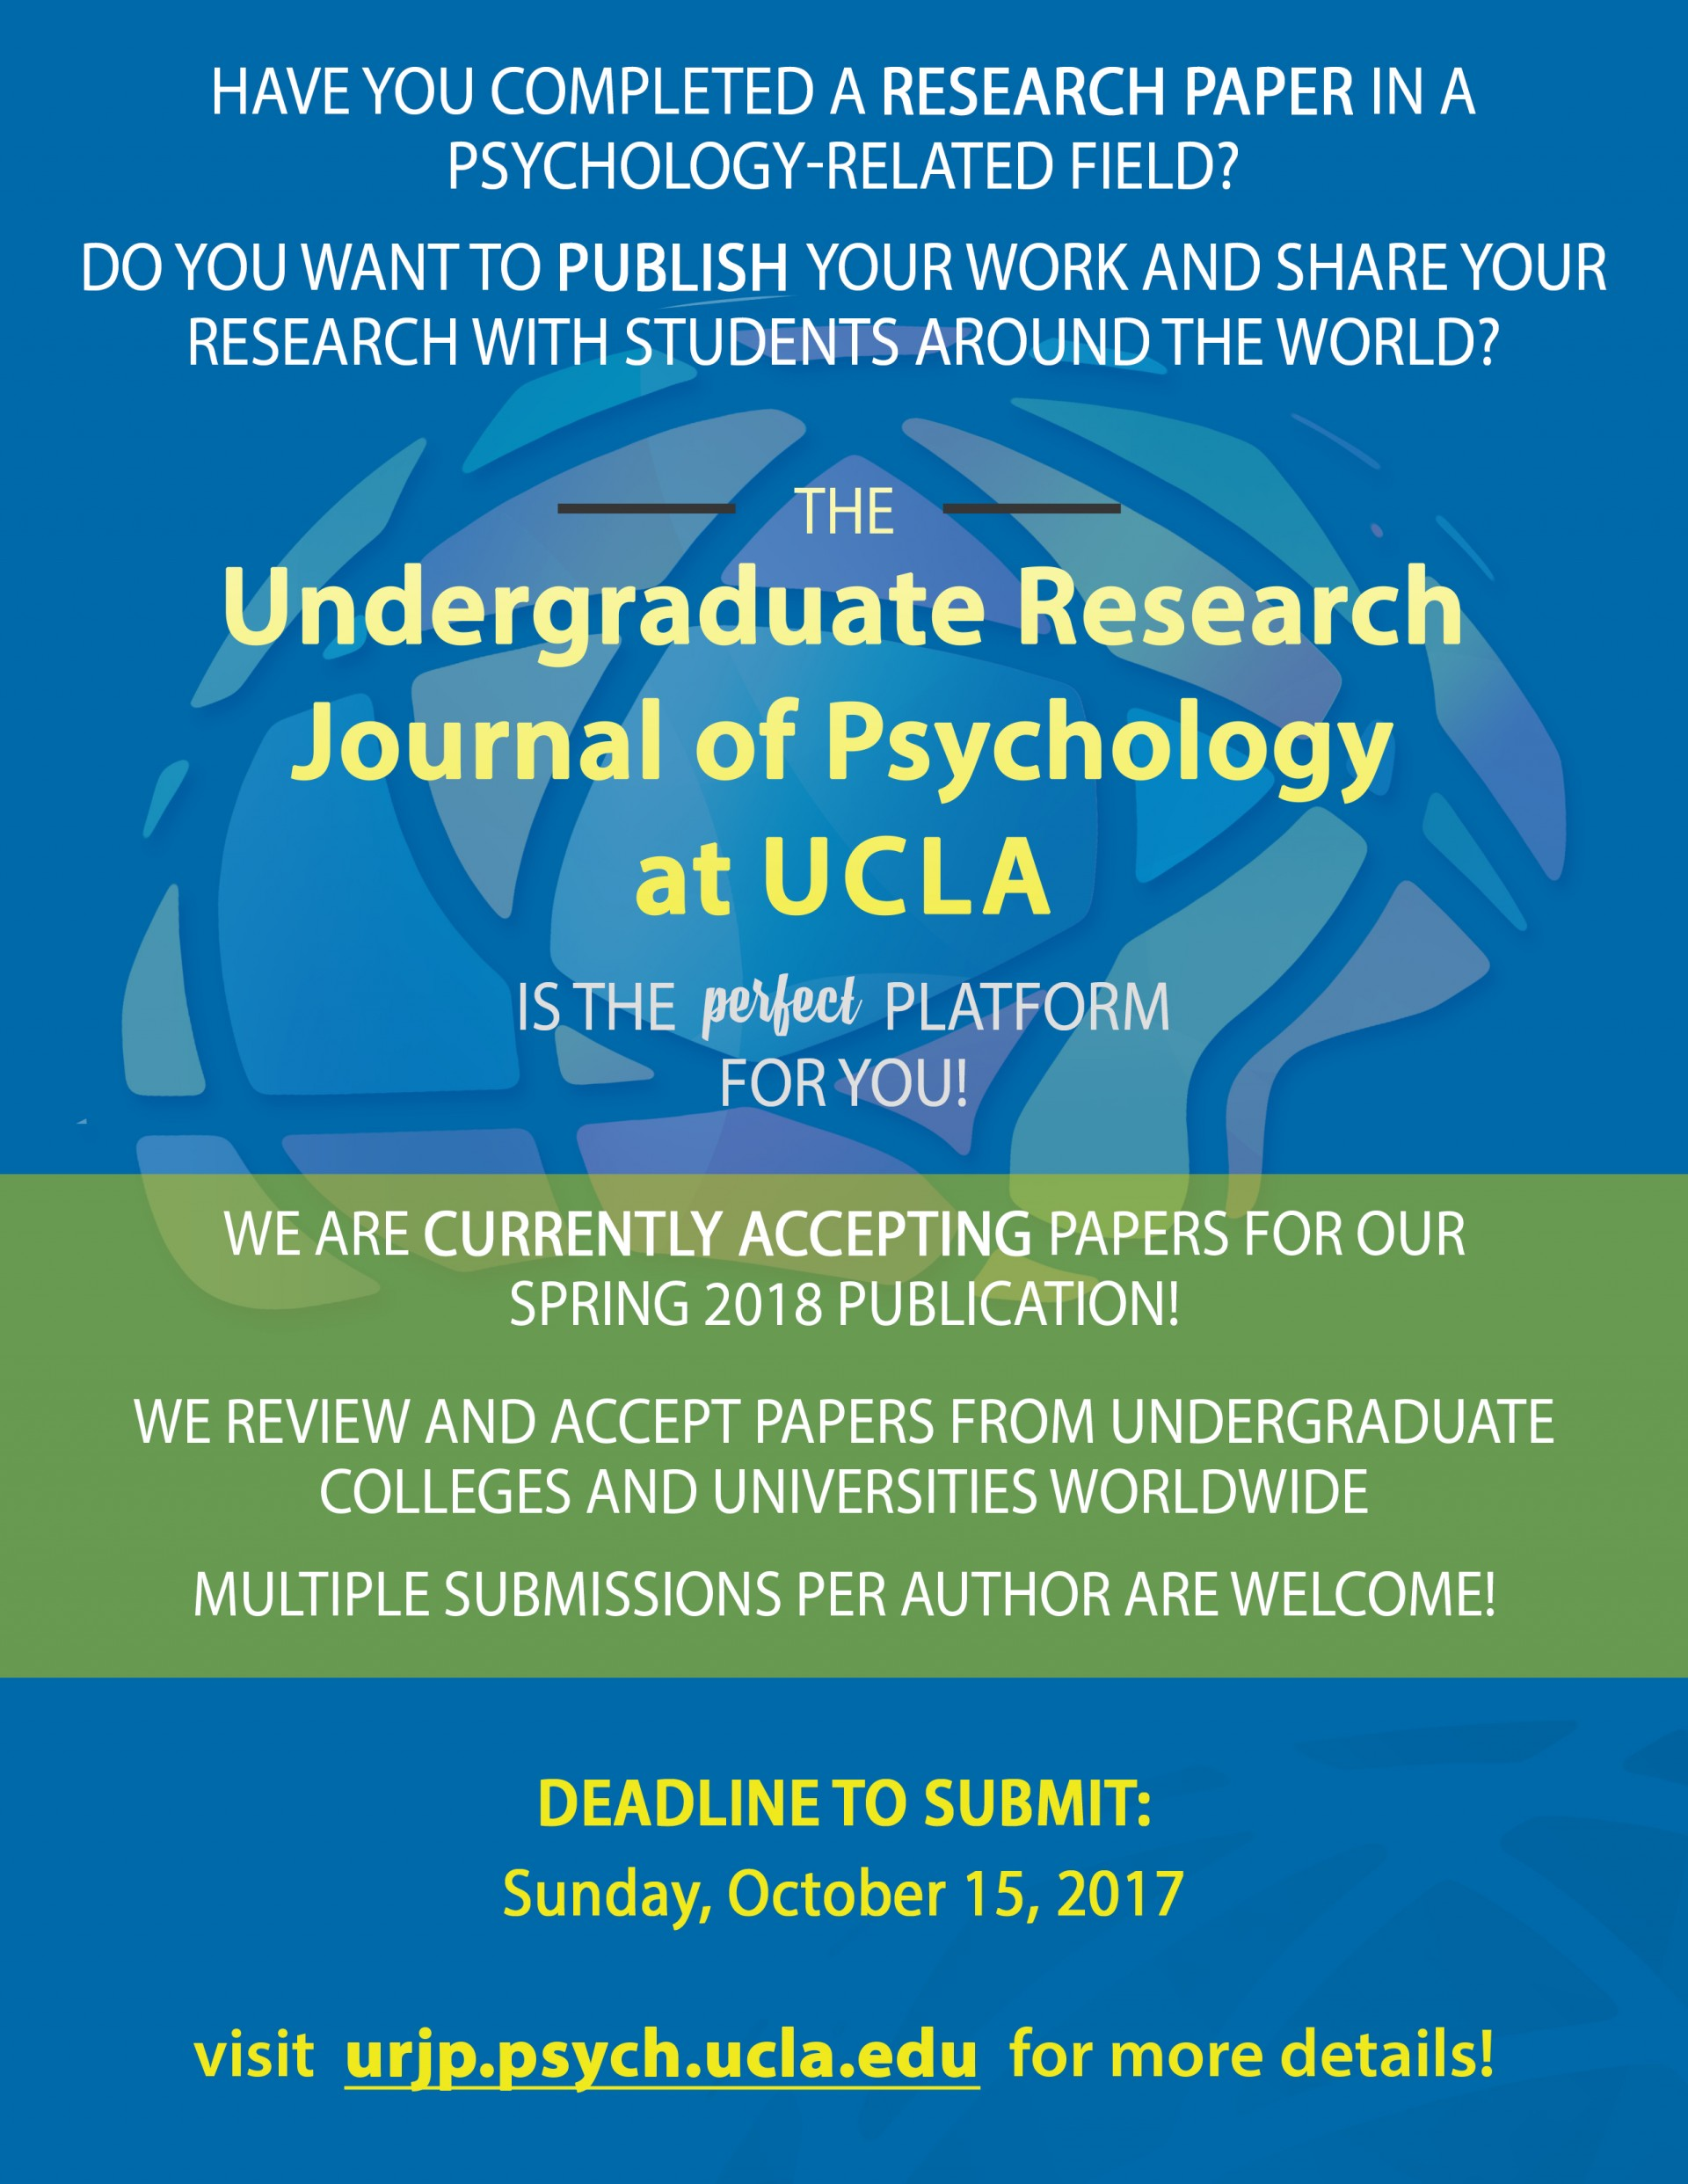 004 Submissions Open Research Paper How To Publish As An Marvelous A Undergraduate In India 1920